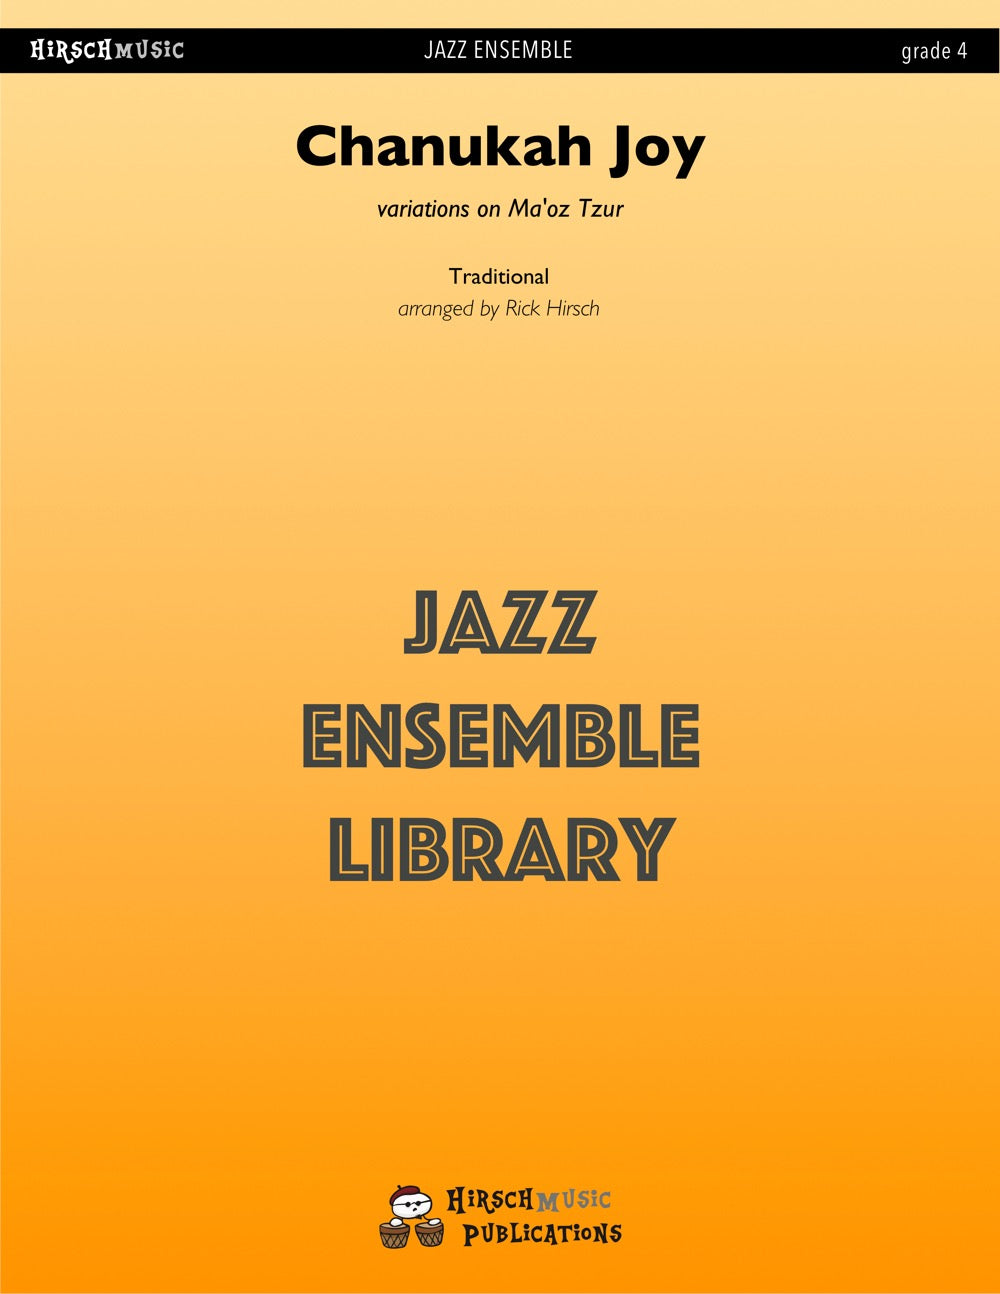 Chanukah Joy: variations on Ma'oz Tzur